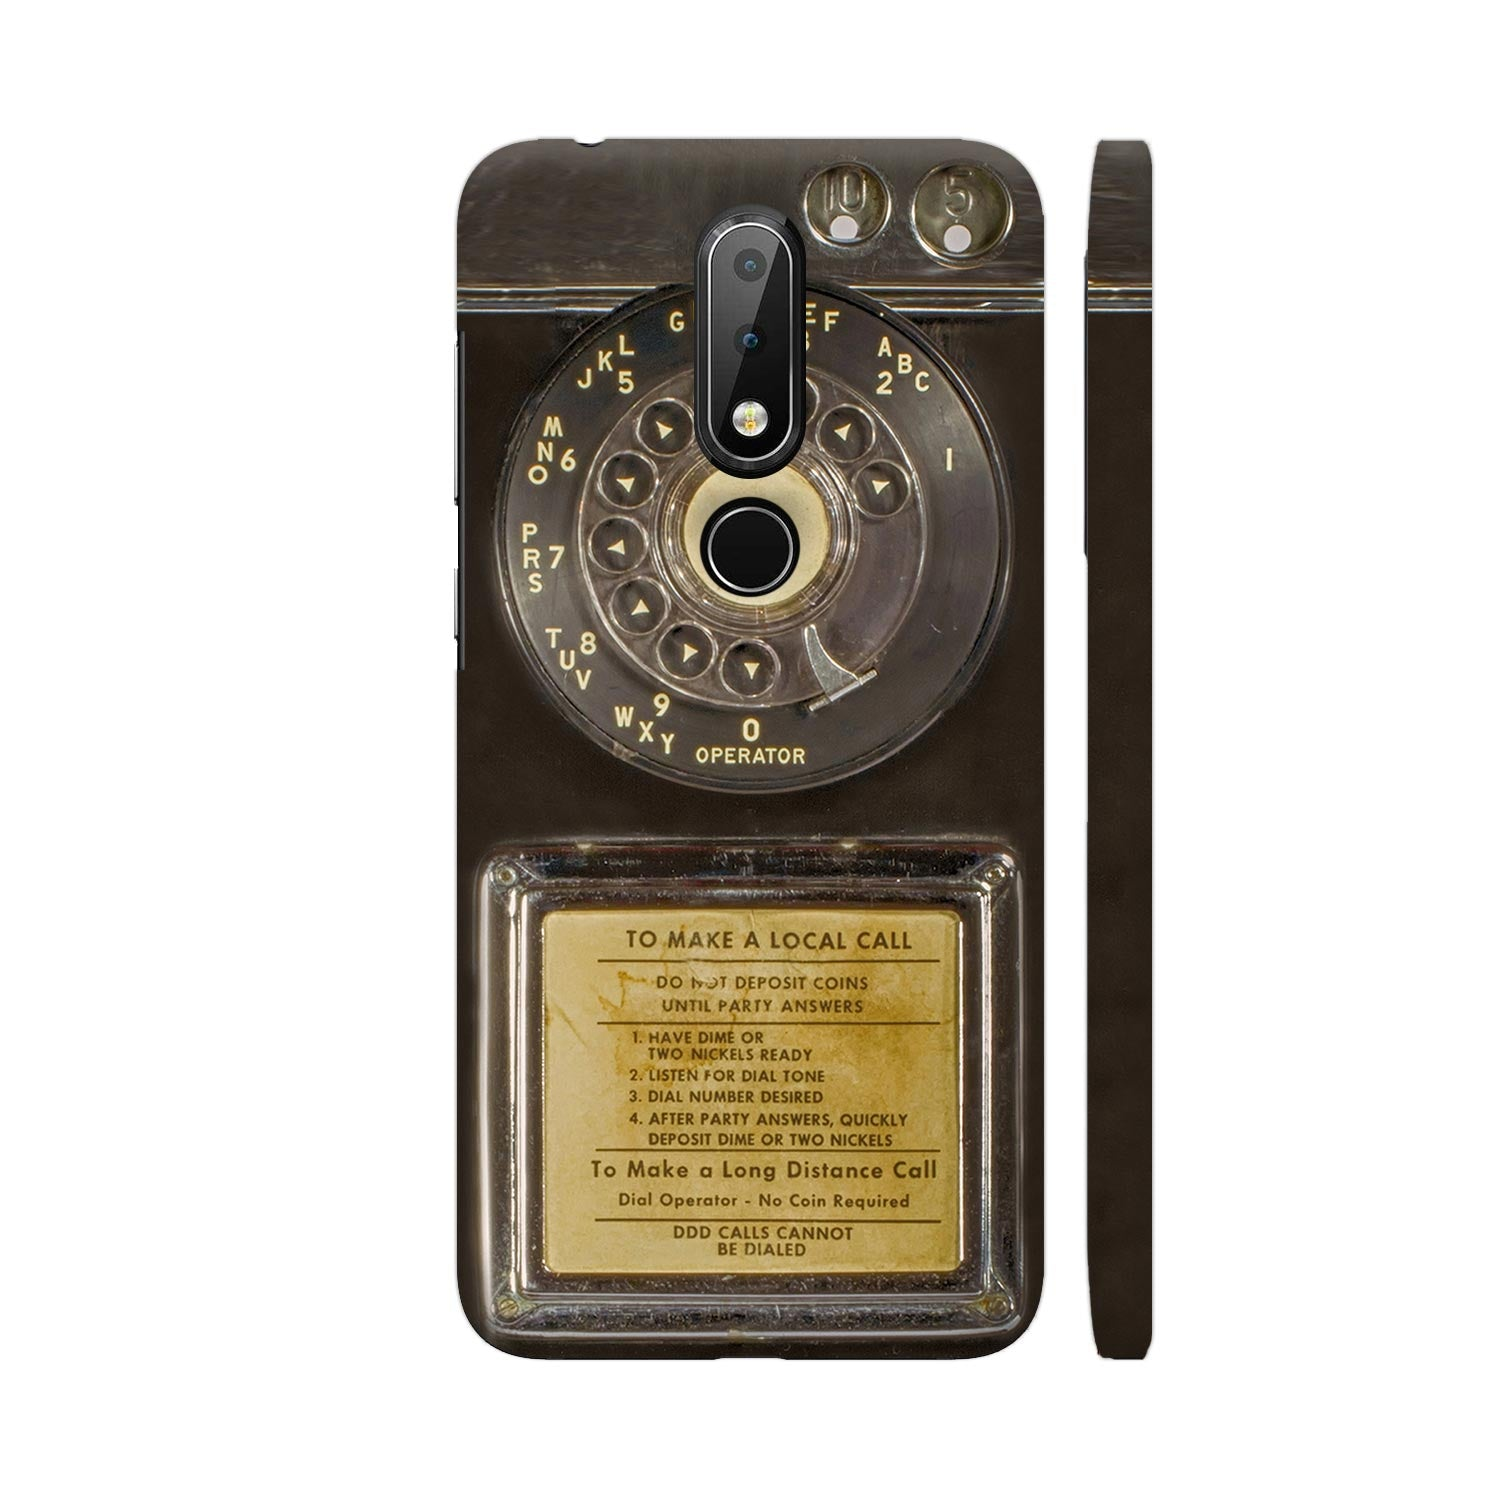 Vintage Slot Phone A.K.A The Public Payphone Slim Case And Cover For Nokia 6p1 Plus